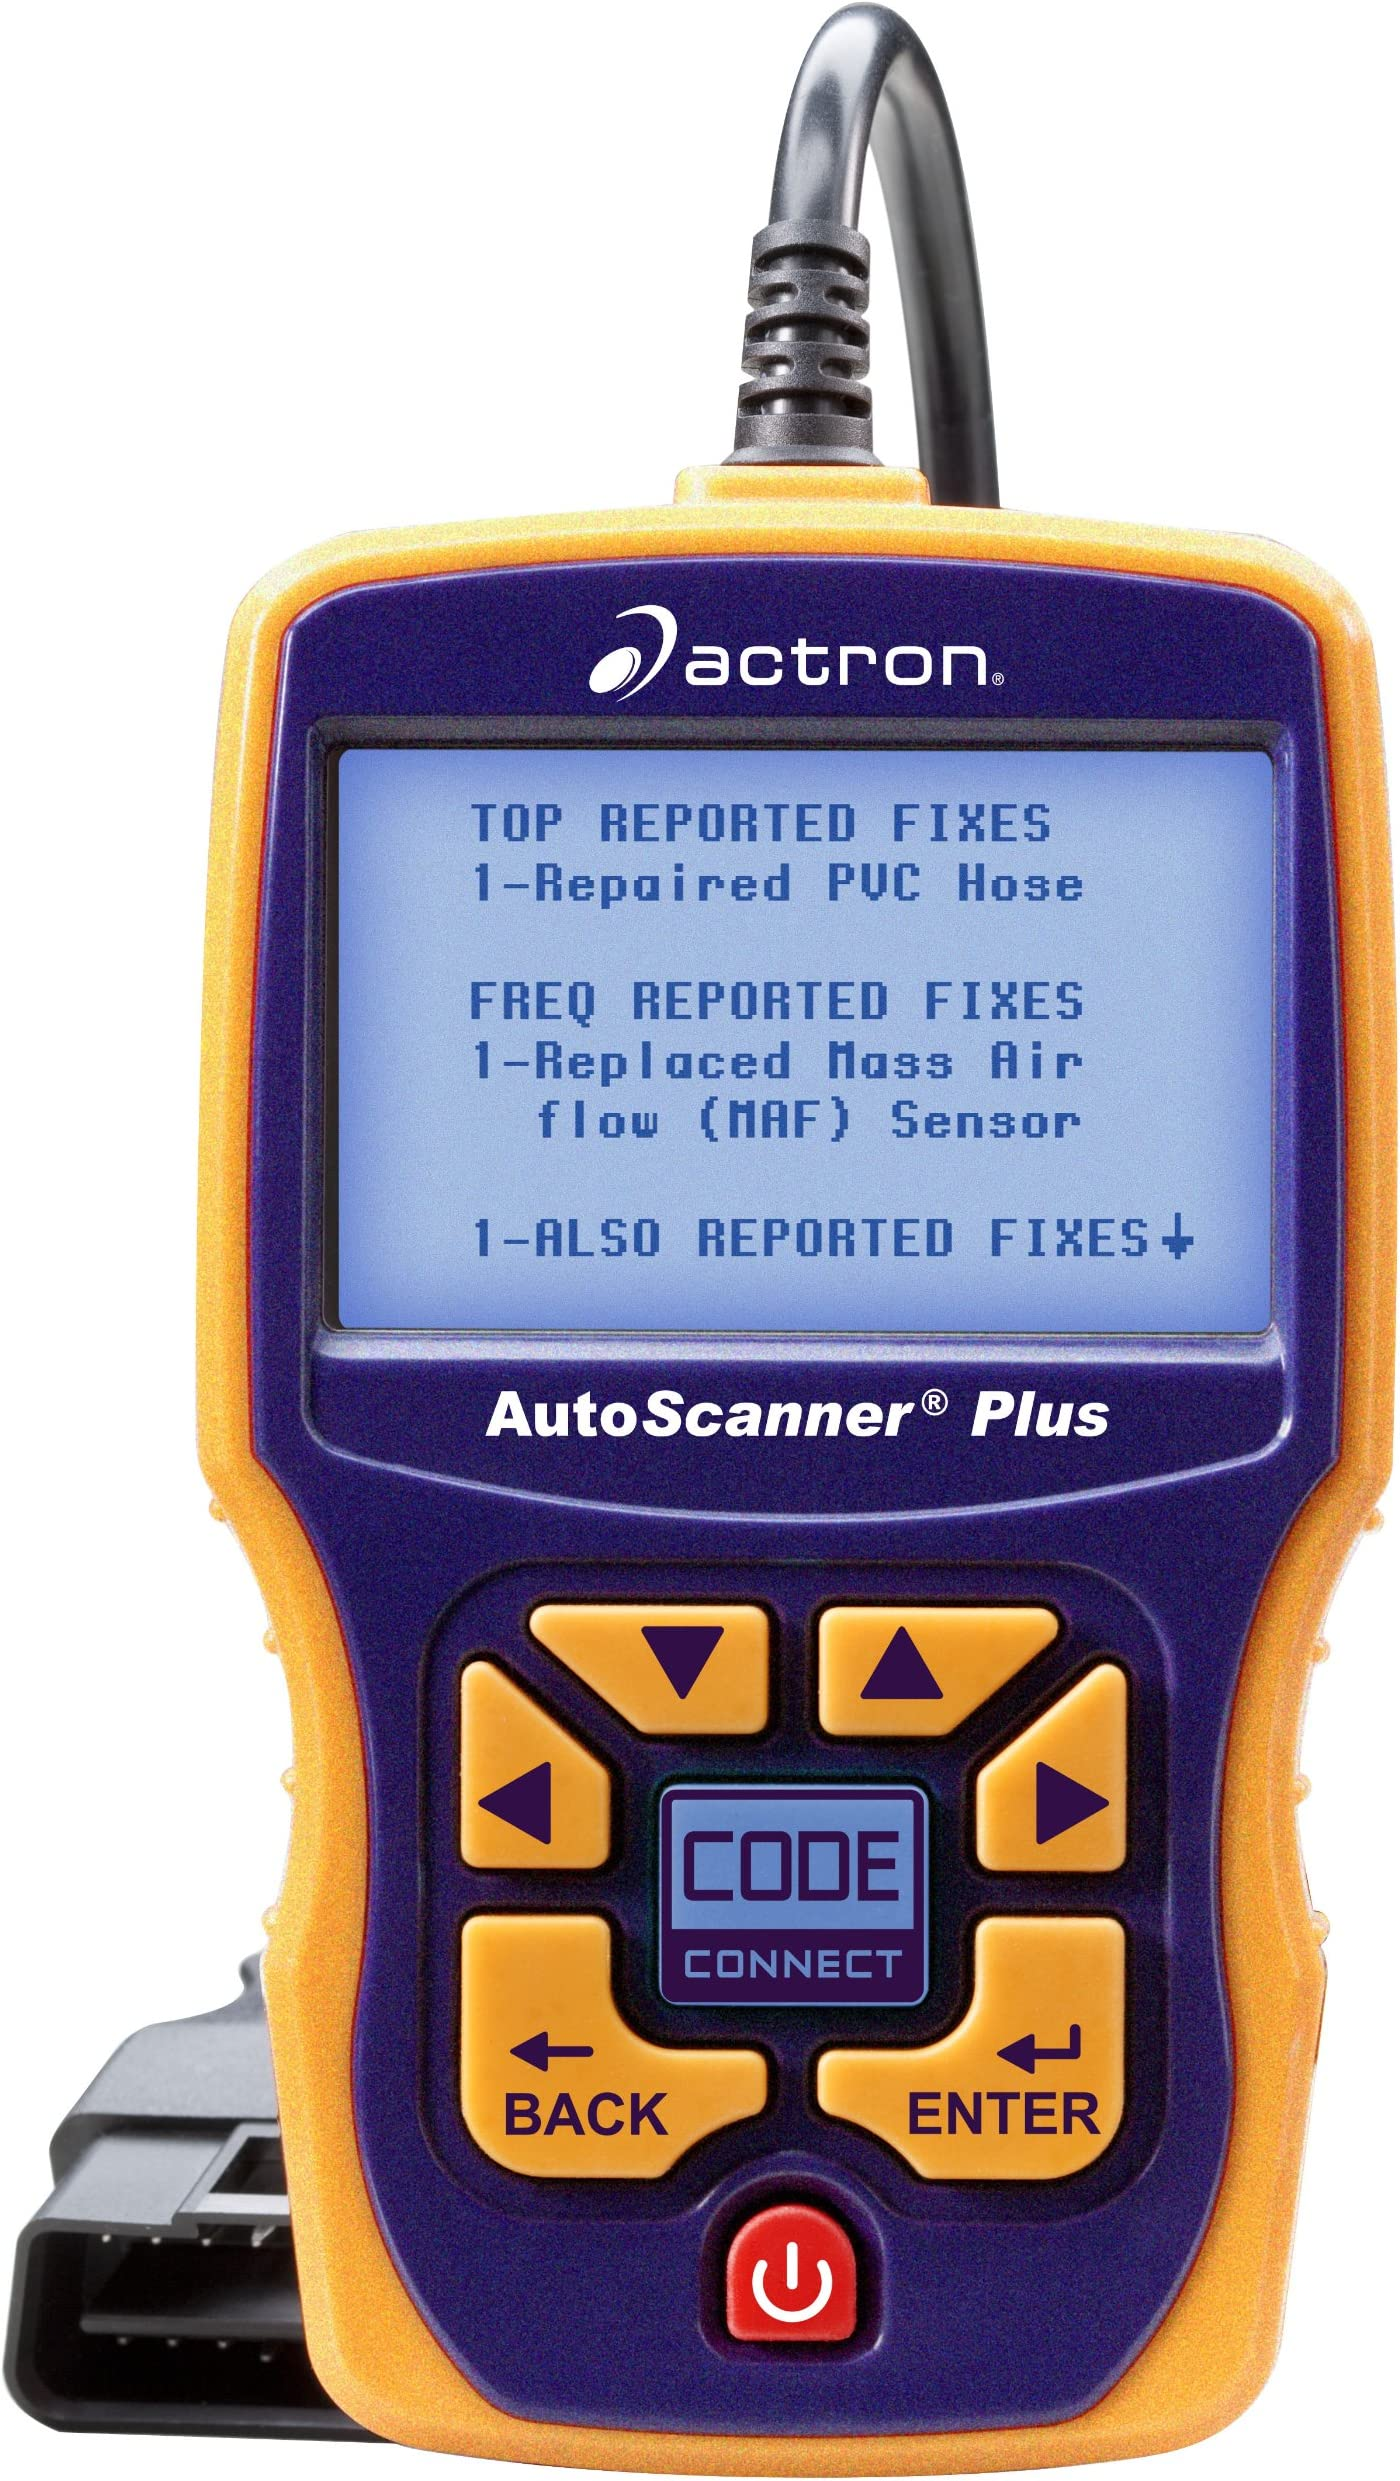 Actron Cp9580a Enhanced Autoscanner Plus Review Best Obd2 Scanner Professional Automotive Diagnostic Scanner In 2020